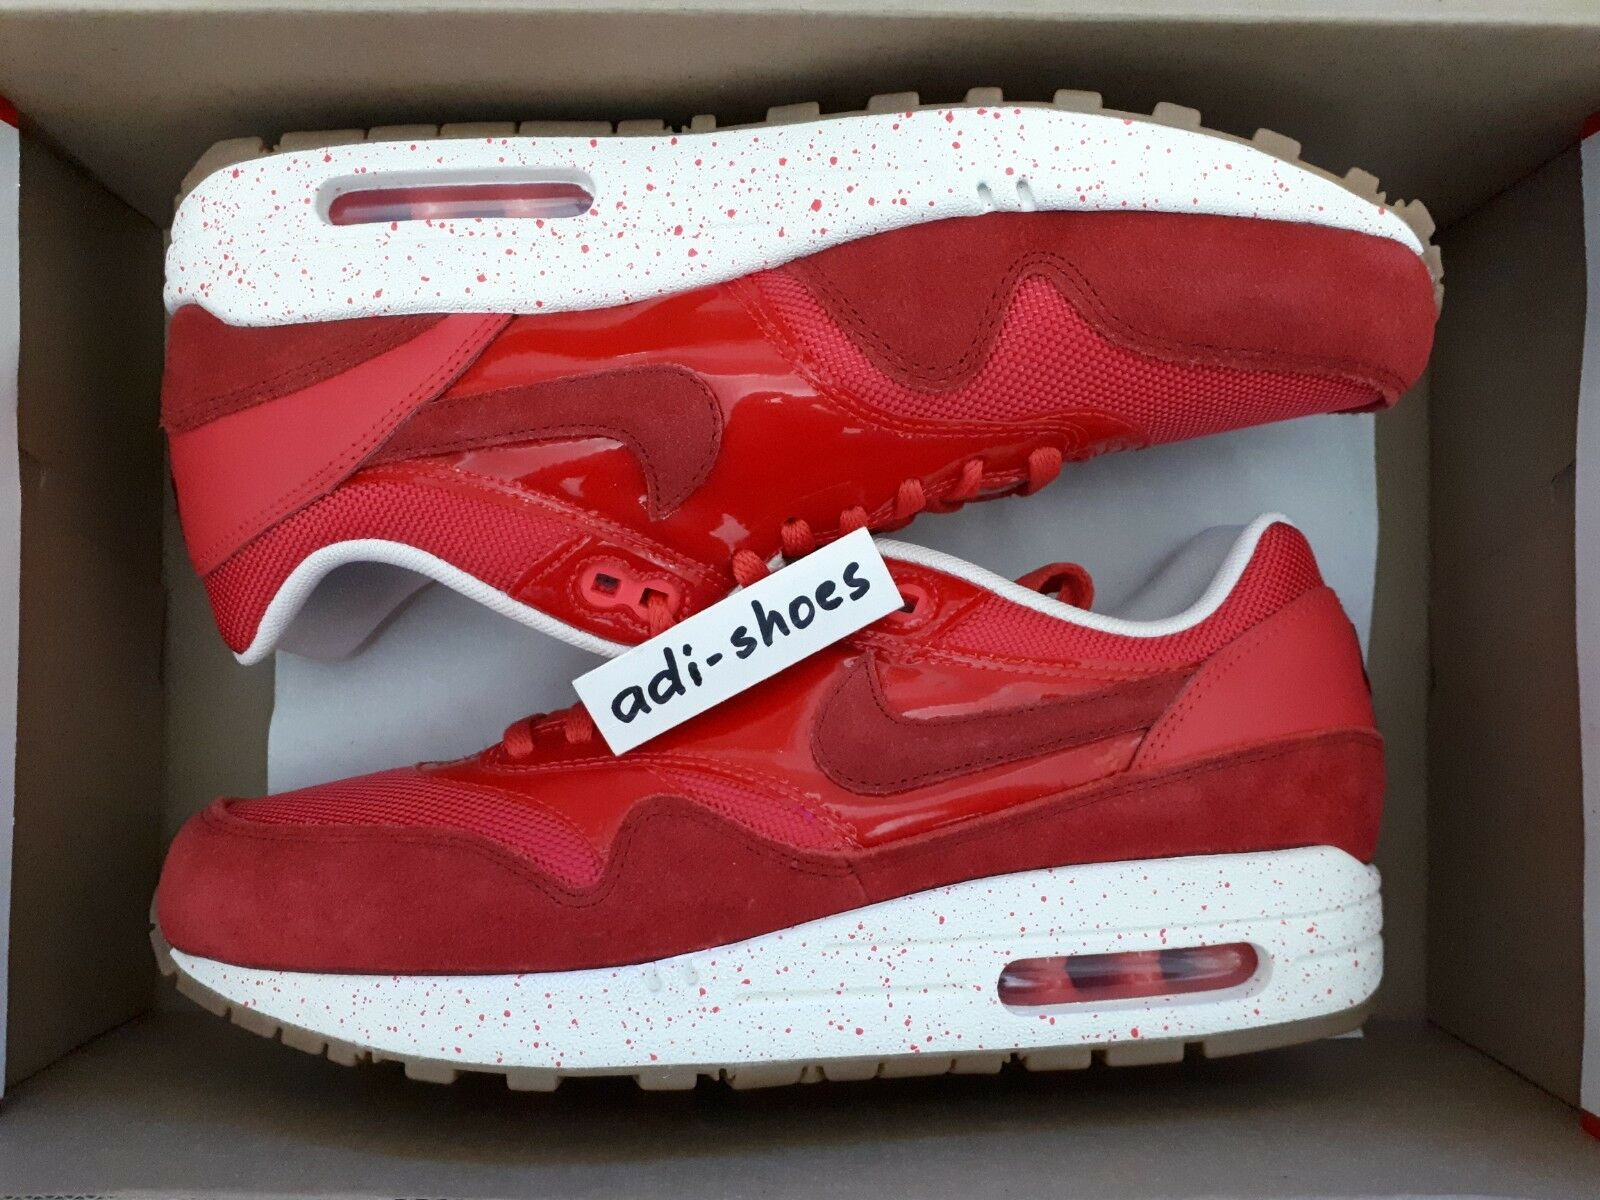 NIKE AIR MAX 1 FUSION ROT/GYM 319986-604 ROT US 6-8 premium 319986-604 ROT/GYM ultra moire 90 lotc 4a6852